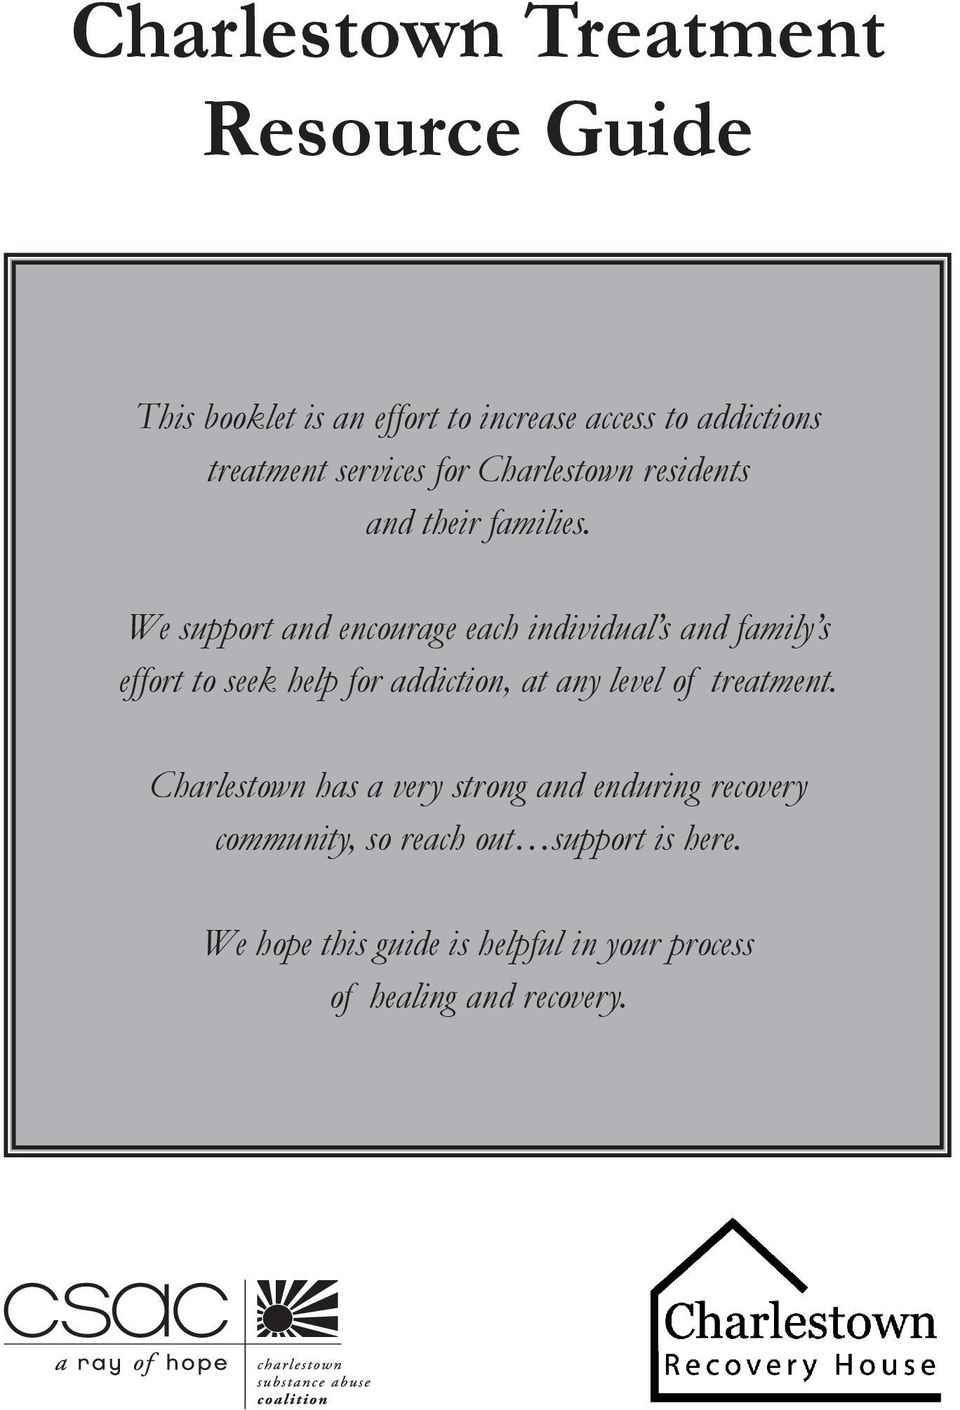 We support and encourage each individual s and family s effort to seek help for addiction, at any level of